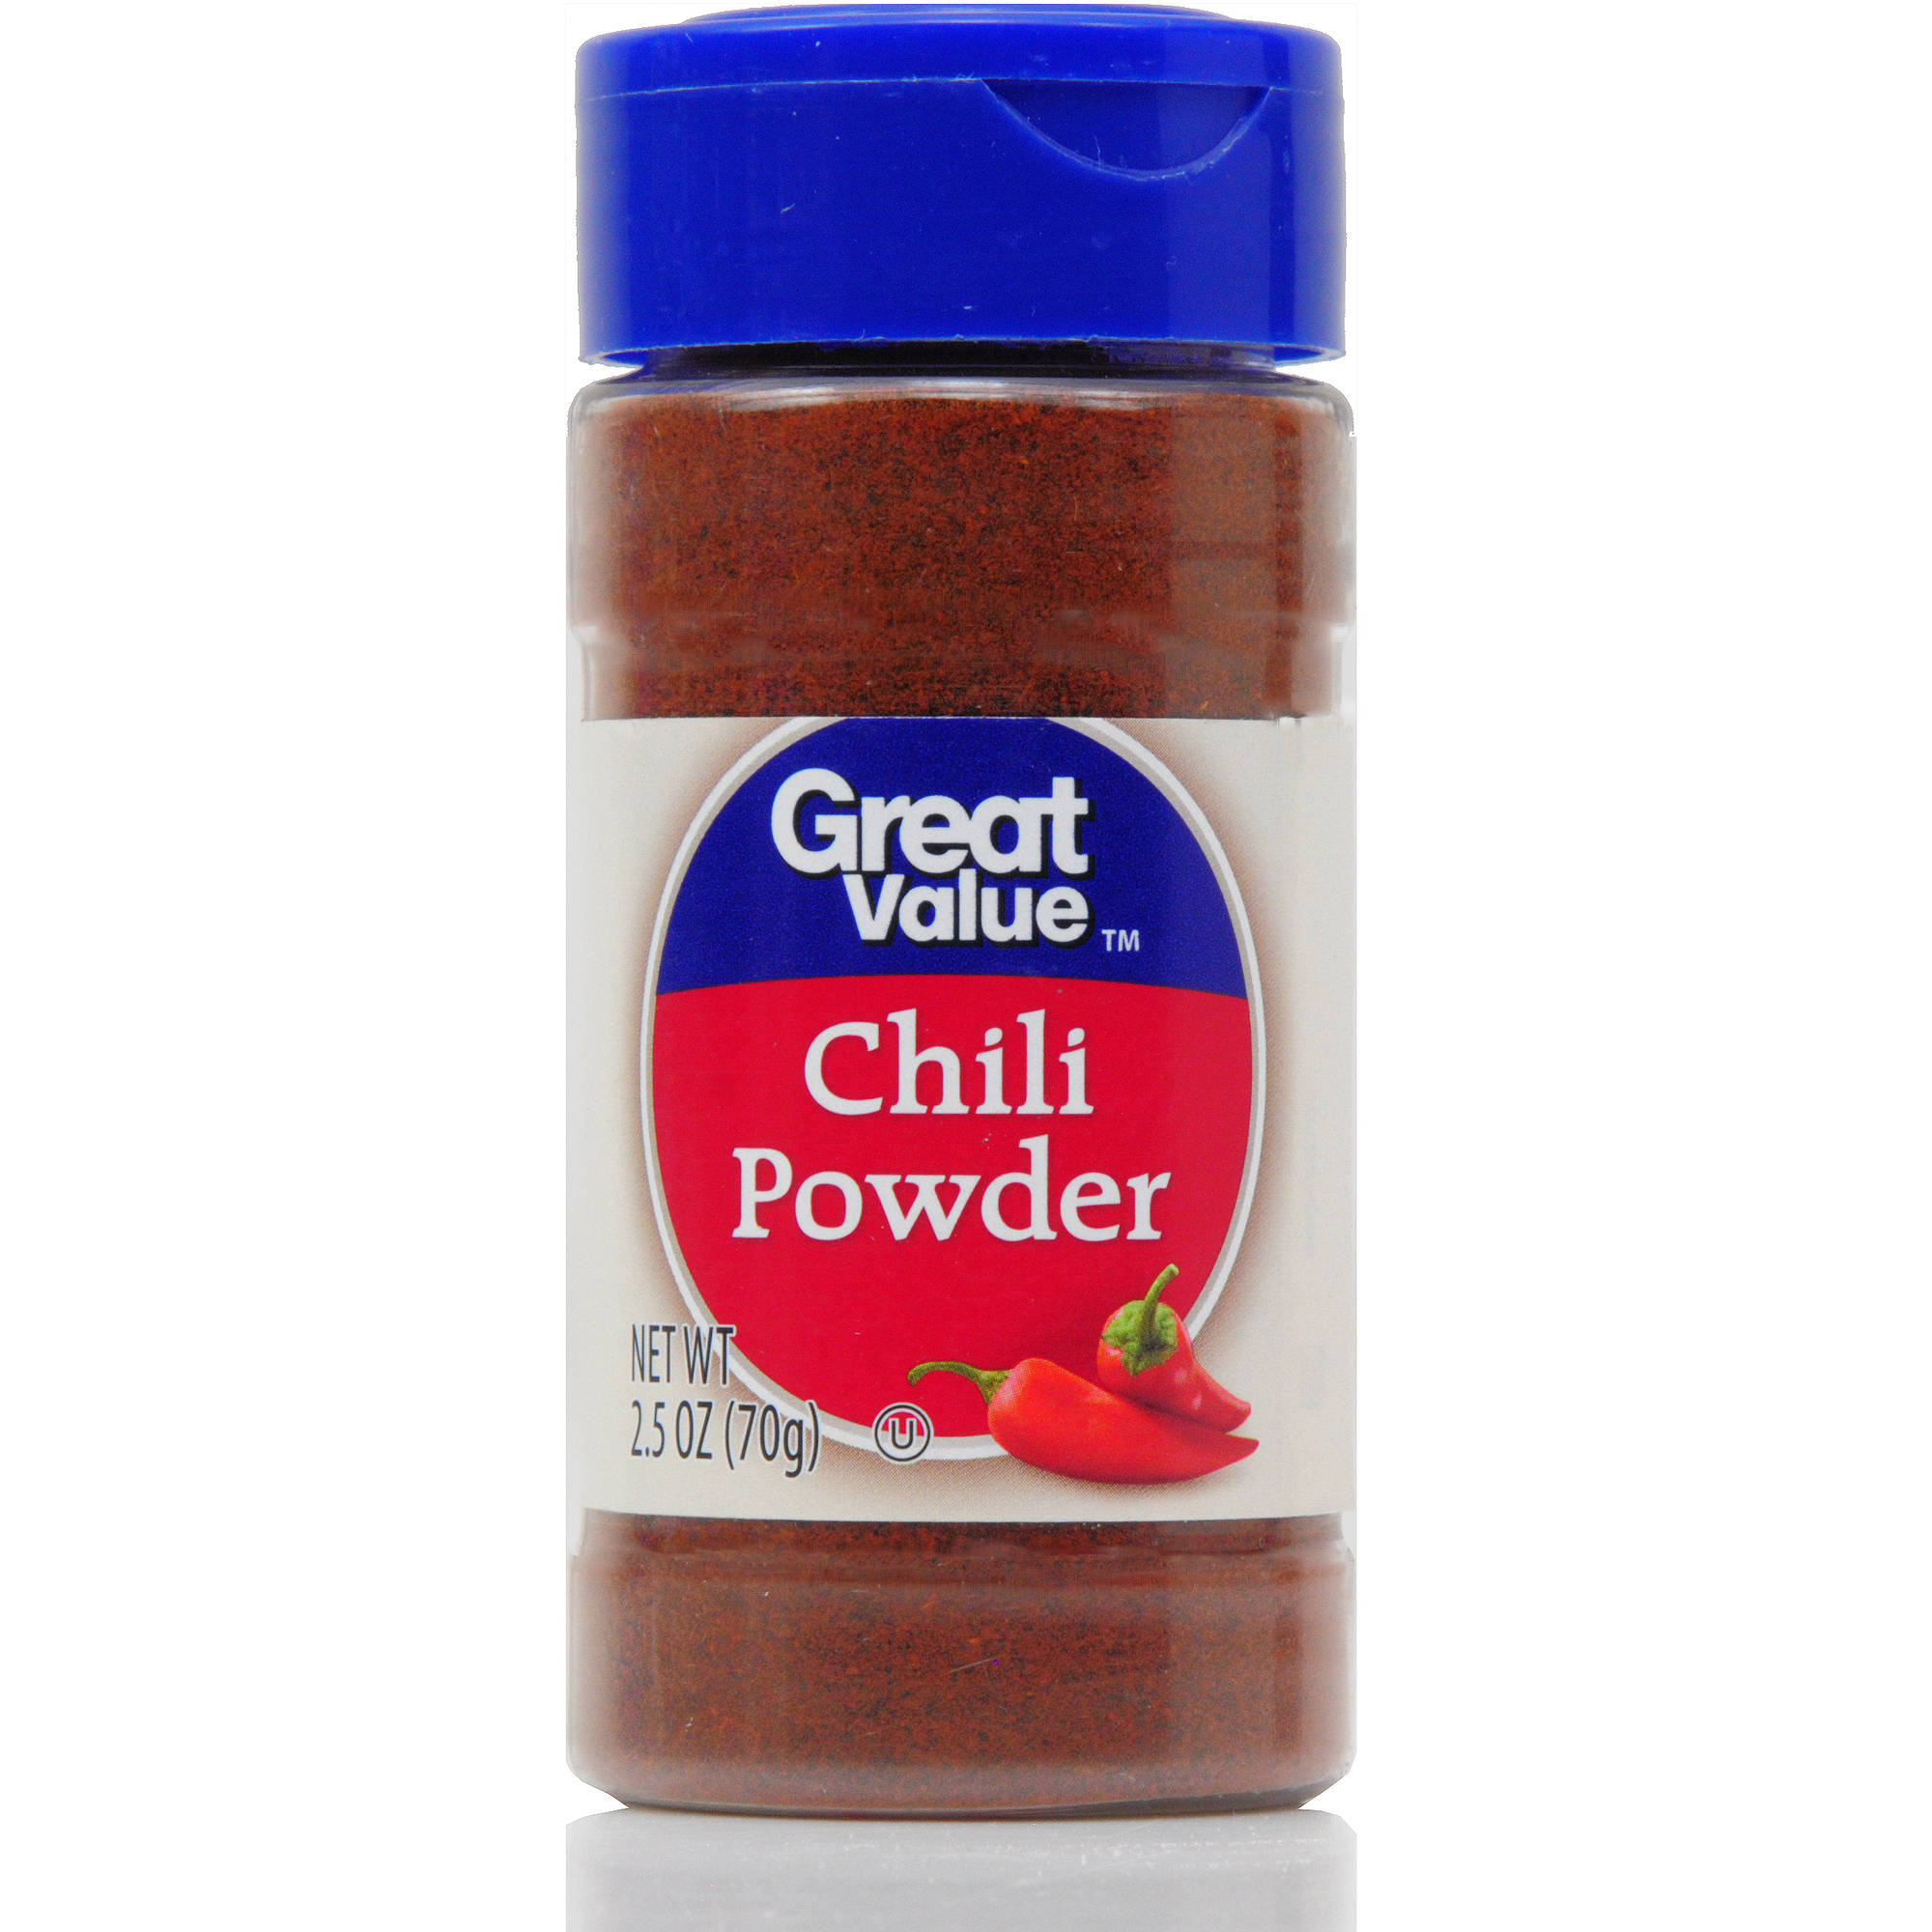 Great Value Chili Powder, 2.5 oz